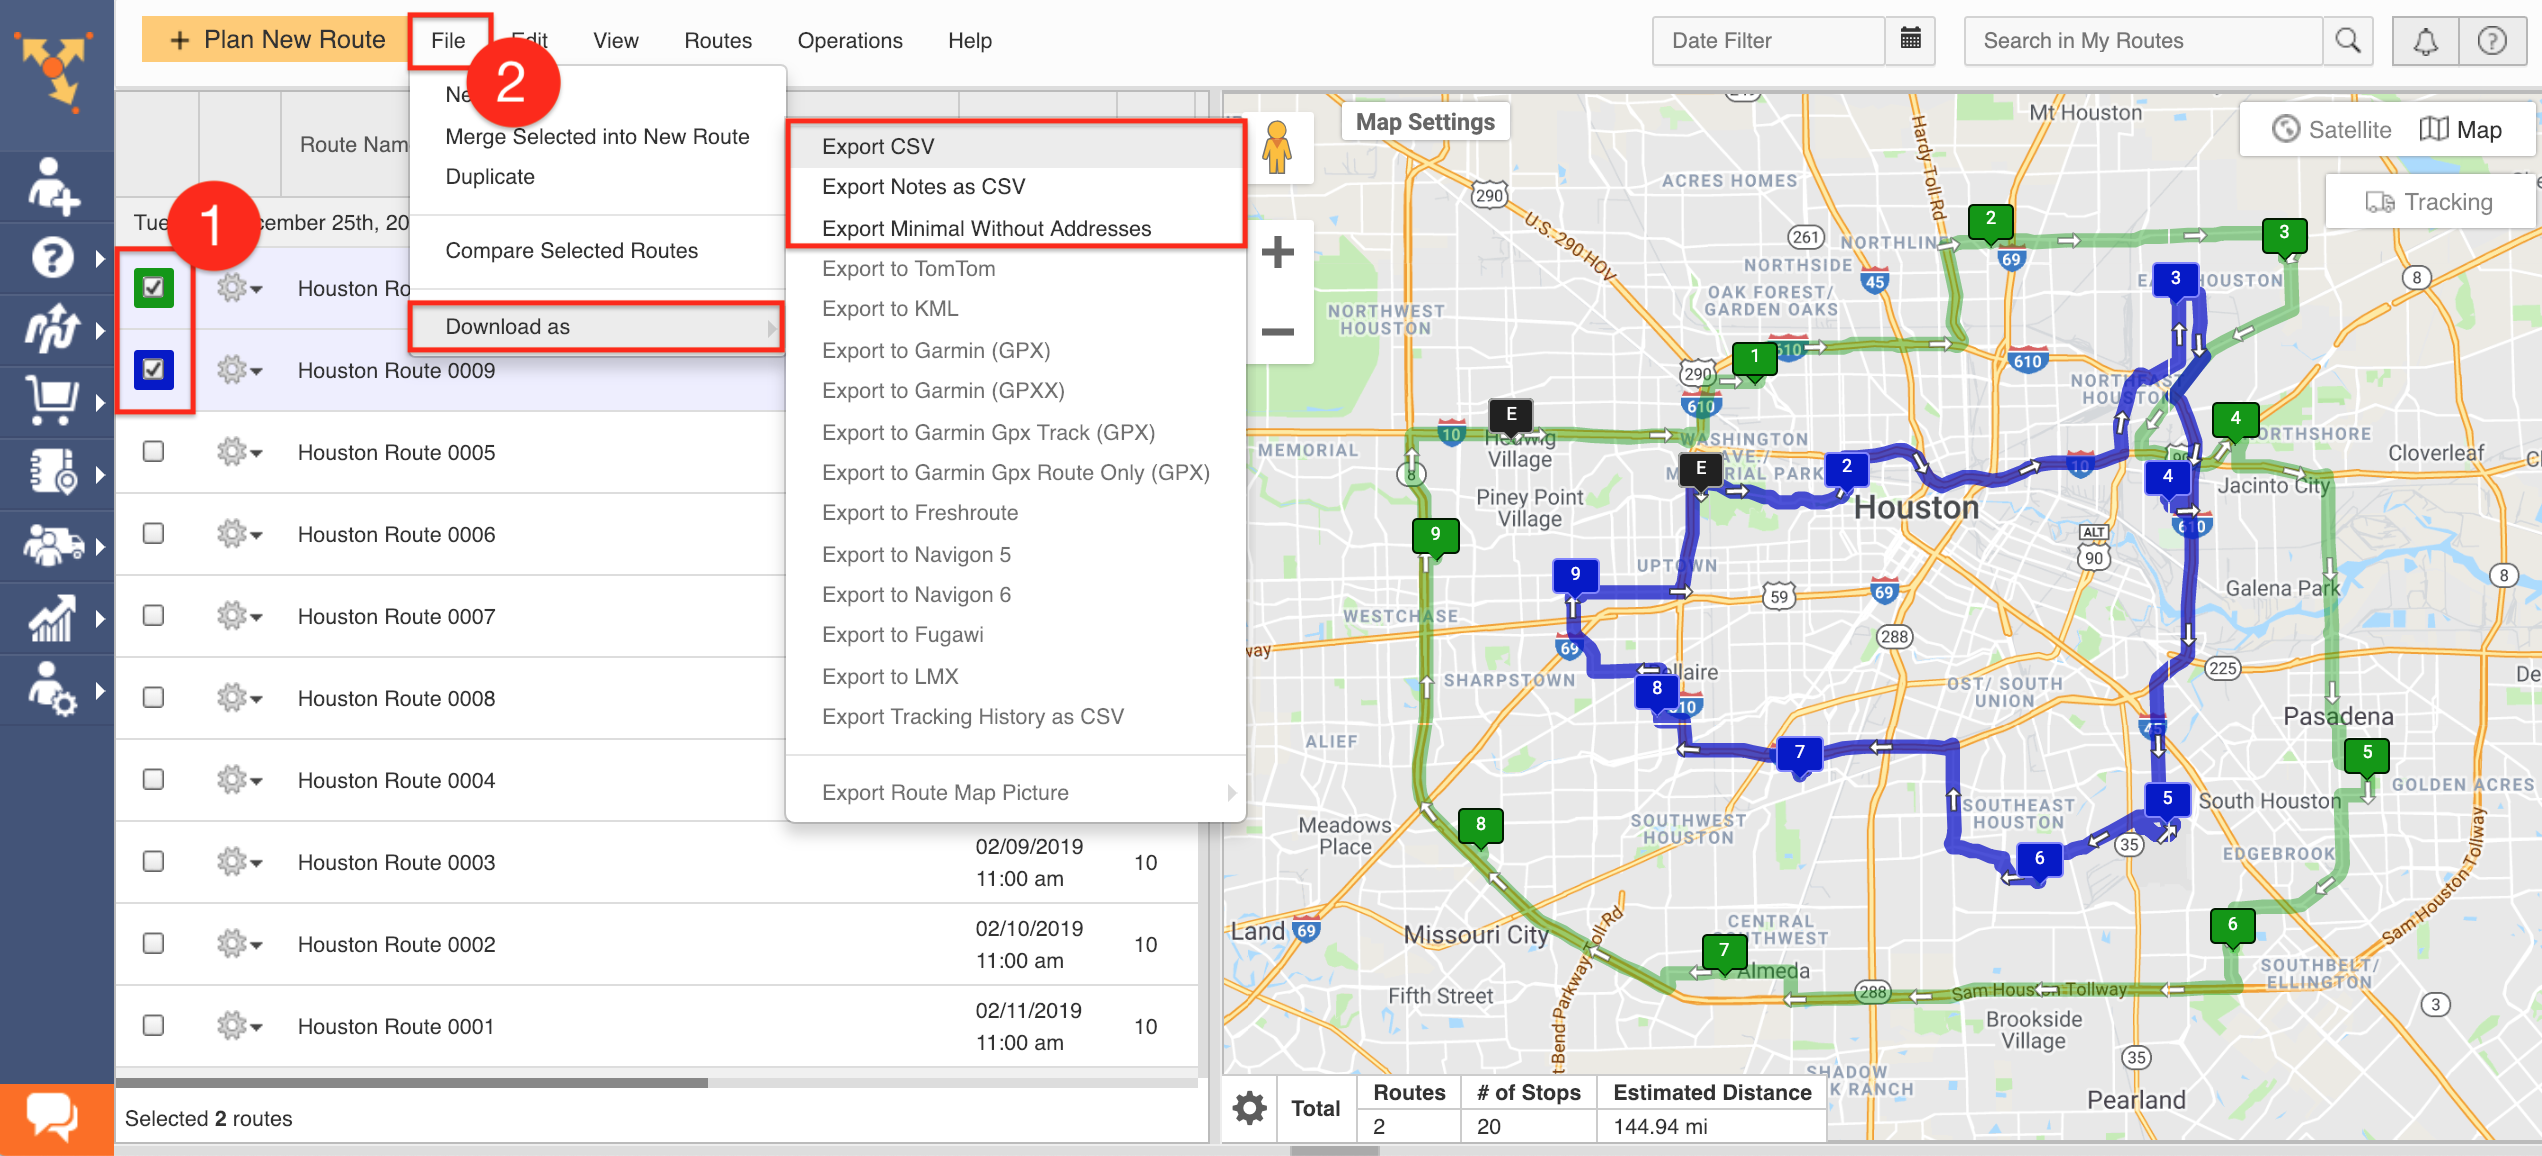 Detailed Route Data Export - Route4Me Support